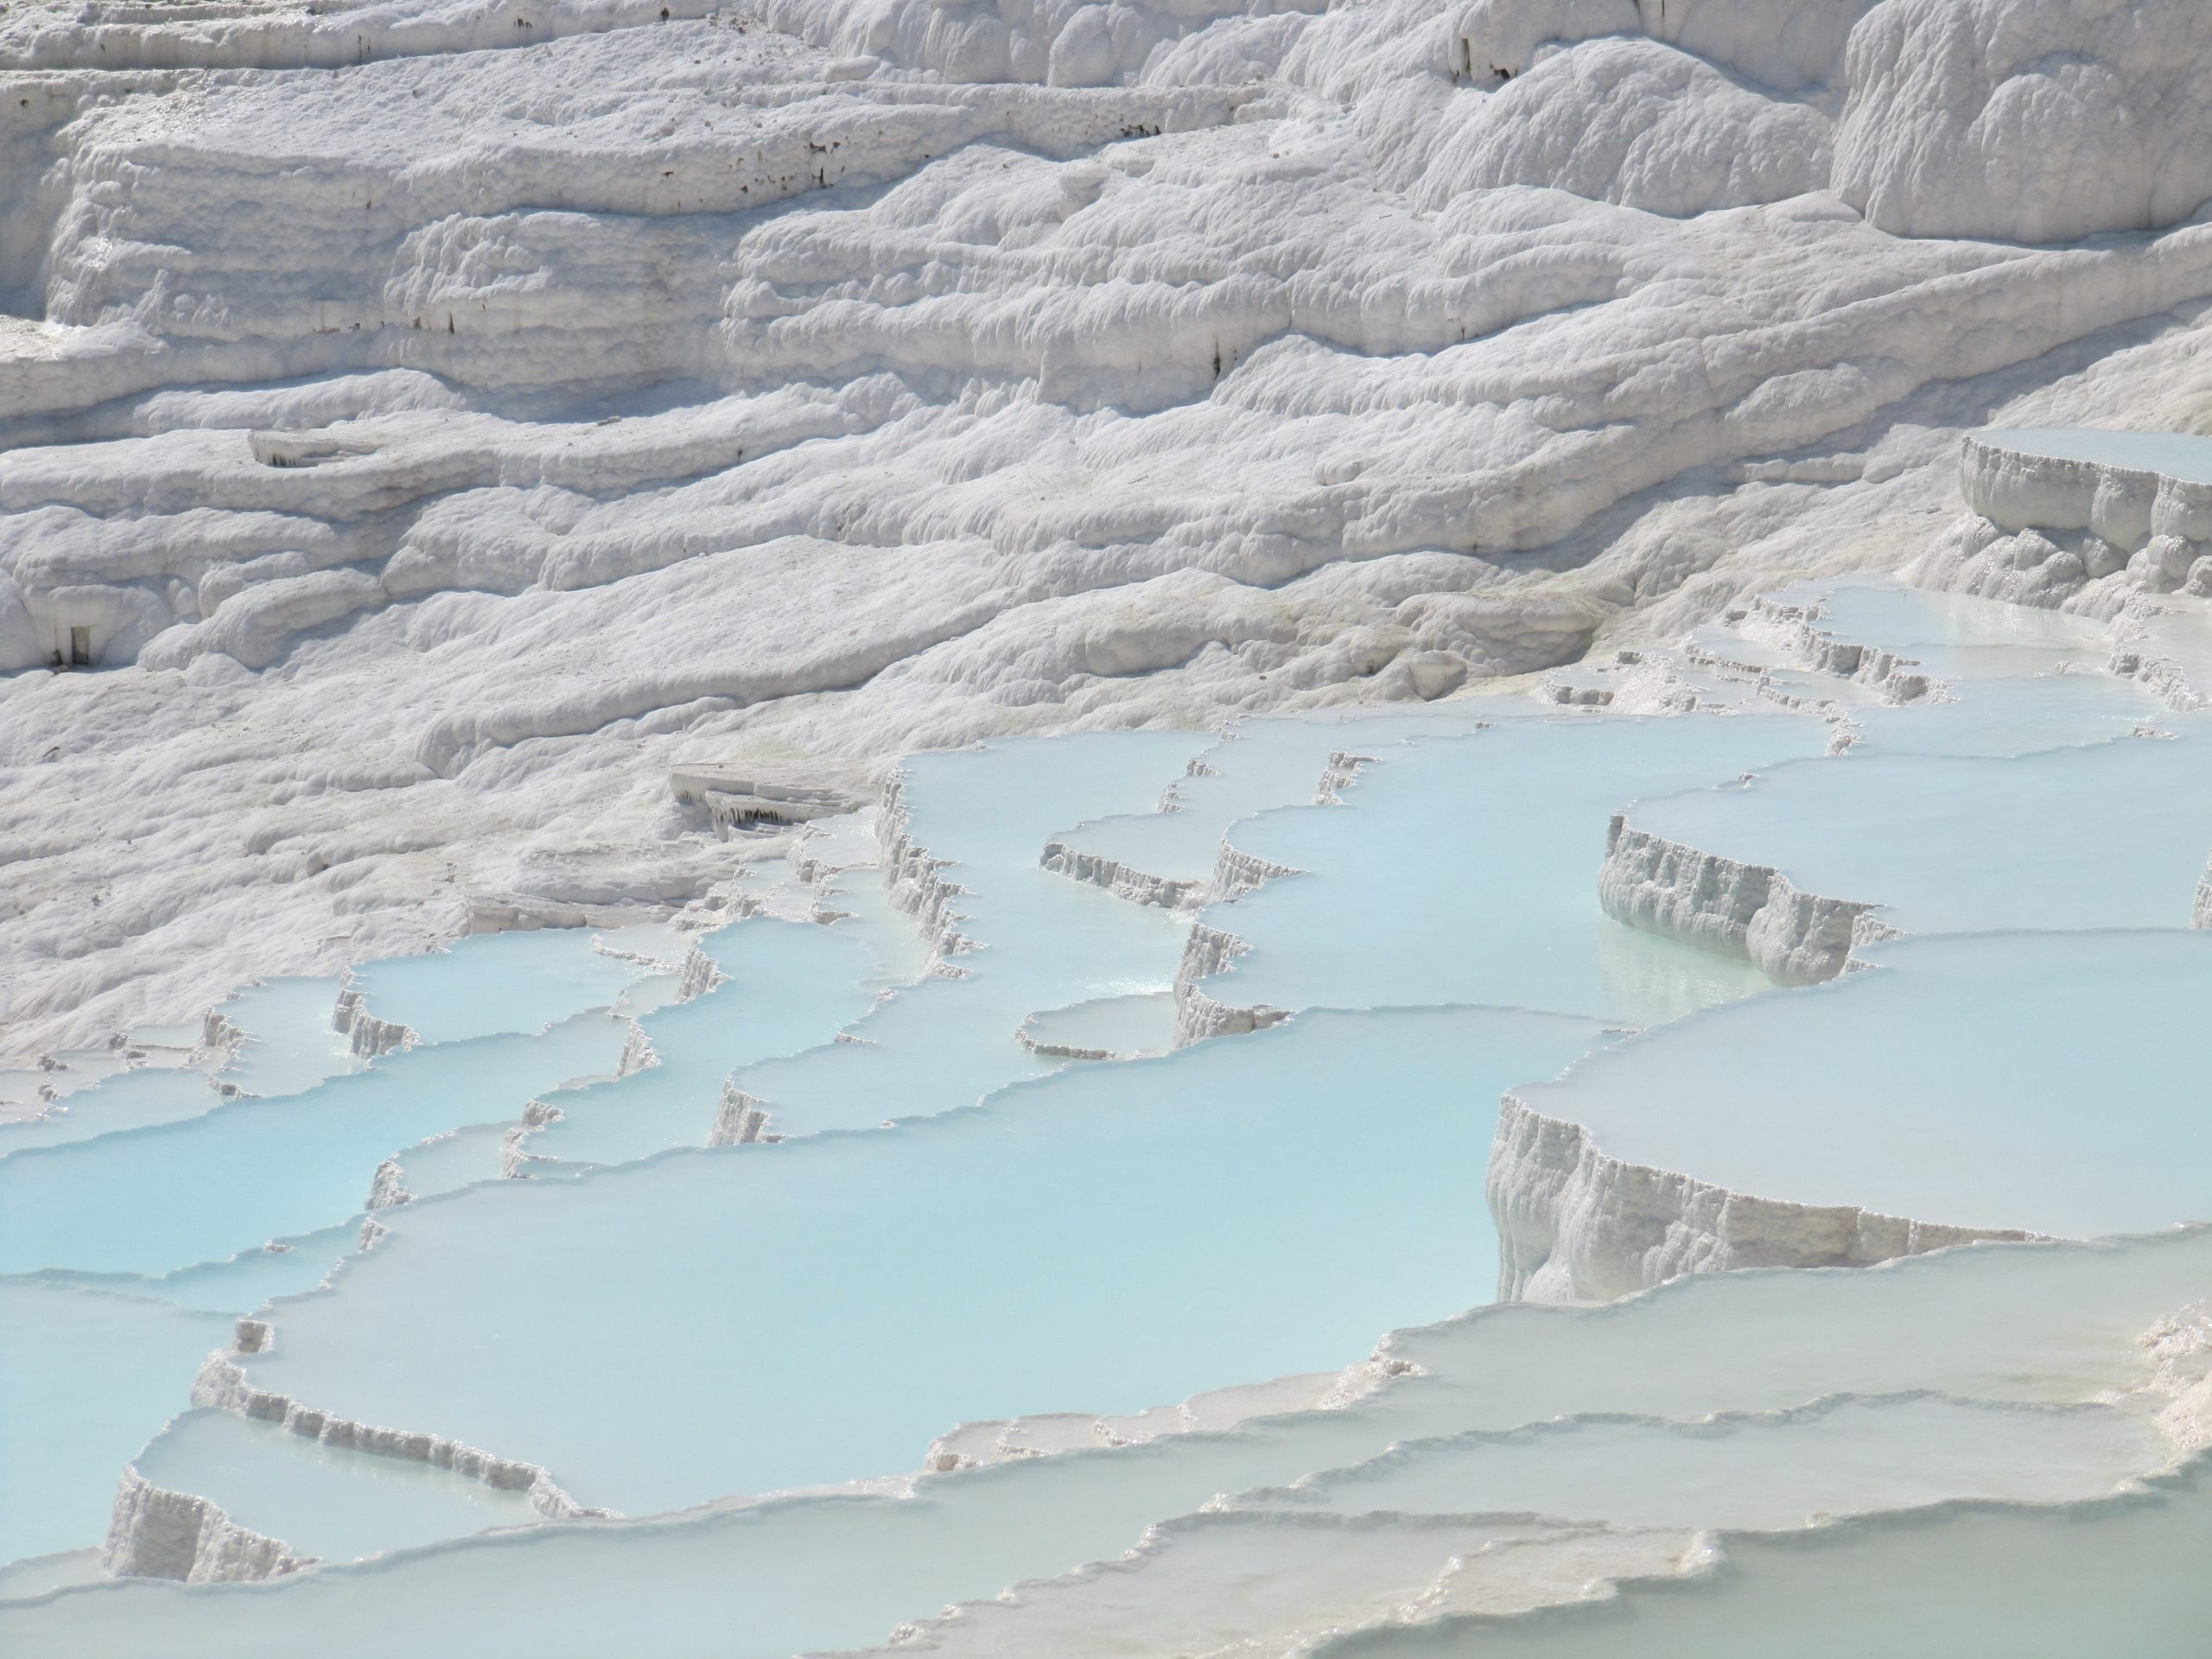 Pamukkale's cotton-white terraces filled with powder blue waters